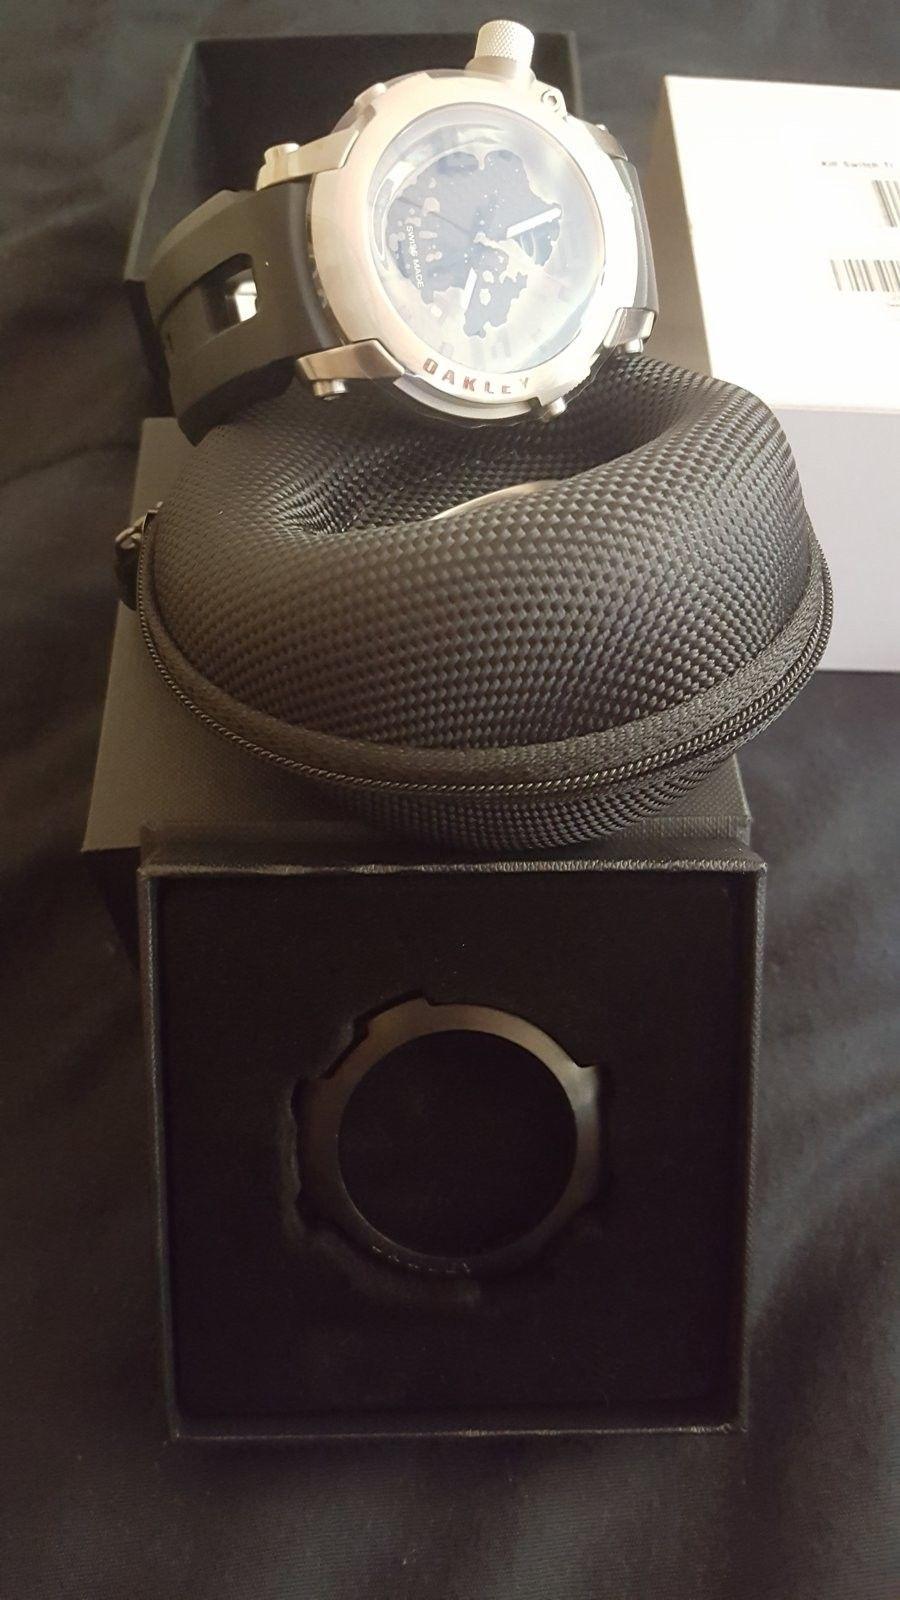 SALE Ti Killswitch with carbonfiber bezel and extra bezel - 20160714_155021.jpg